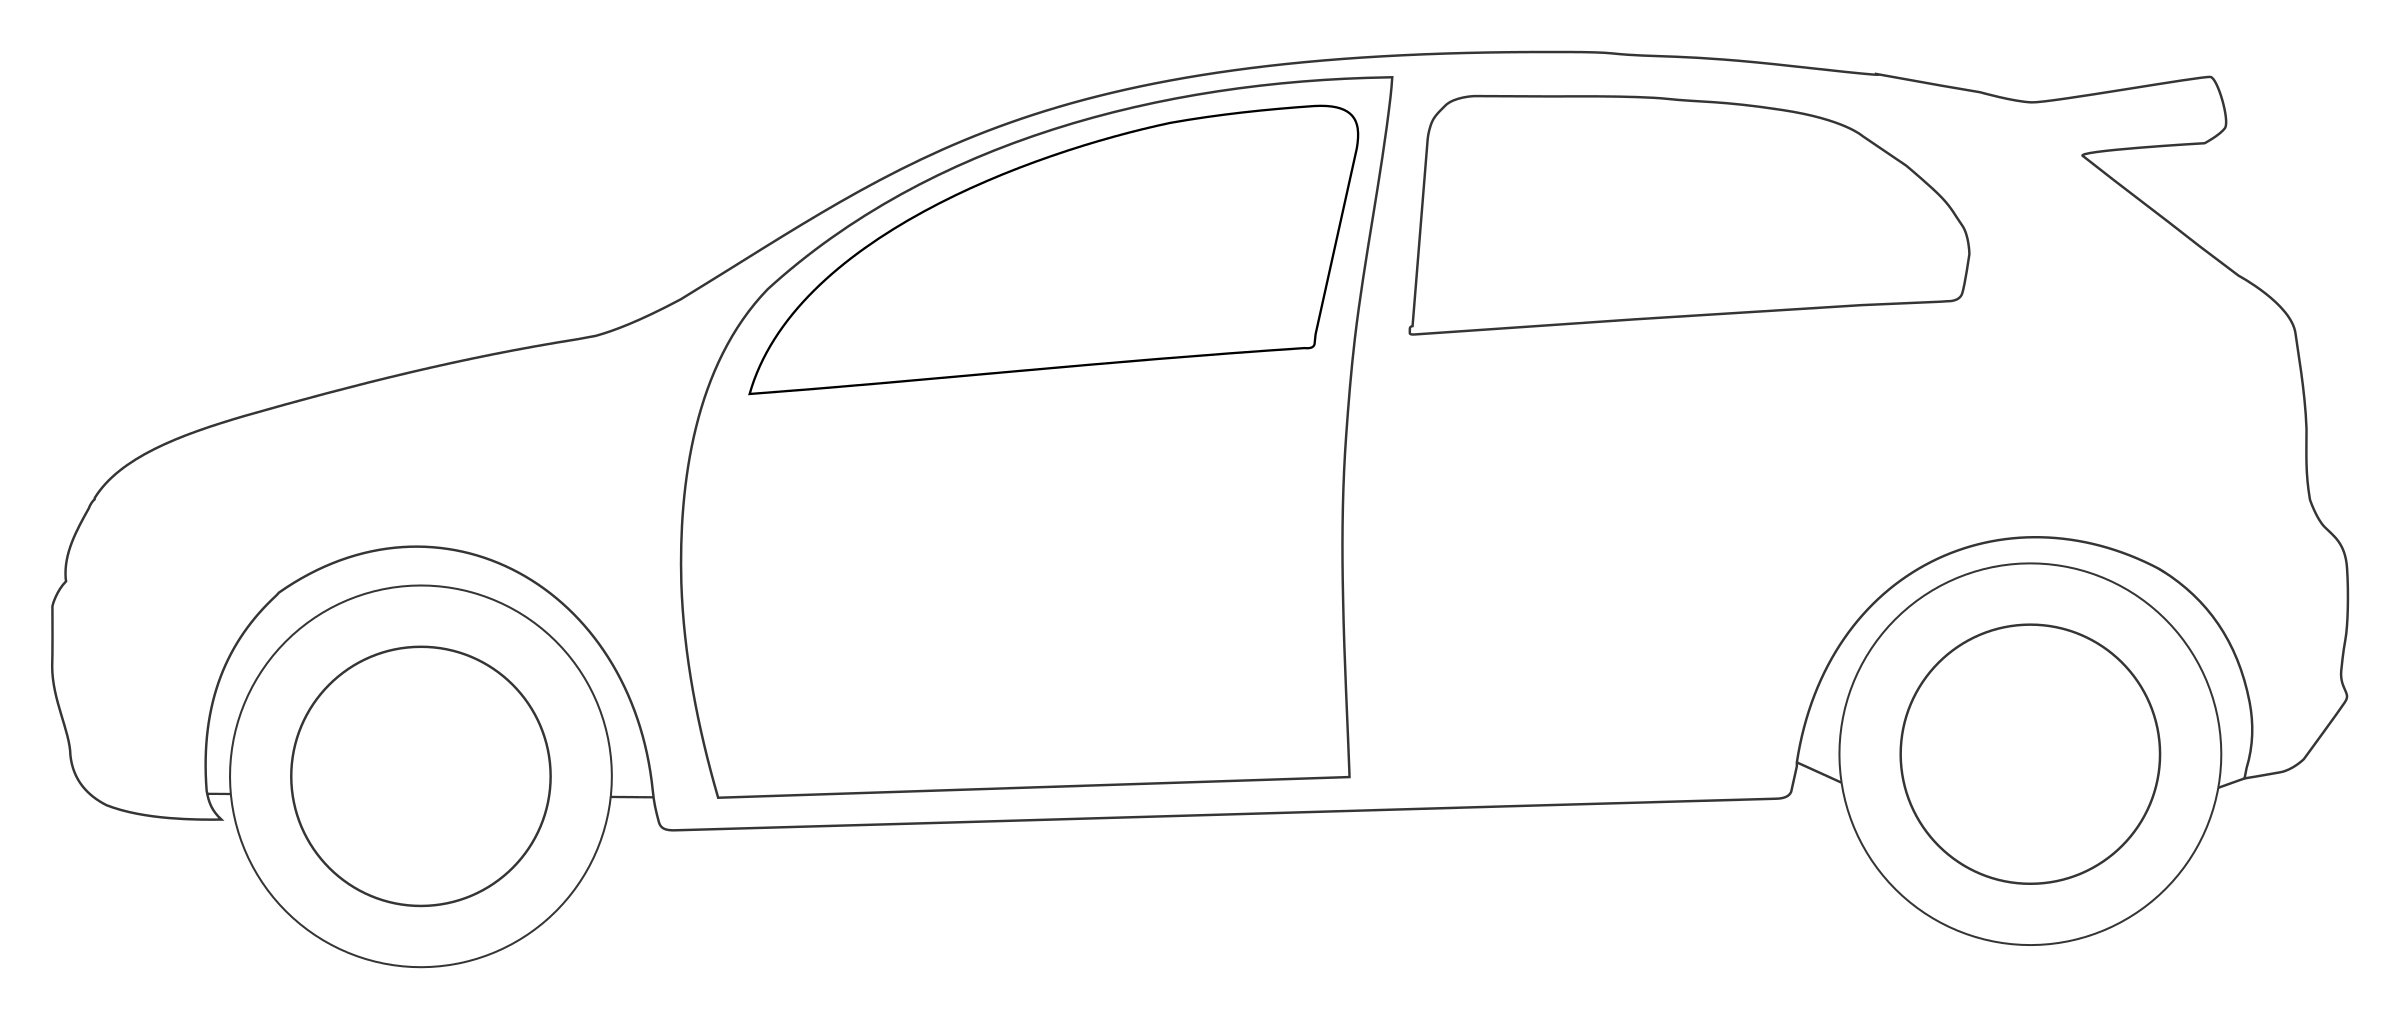 Car side view clipart clip free stock Clipart - Rally Car Side View Shape clip free stock